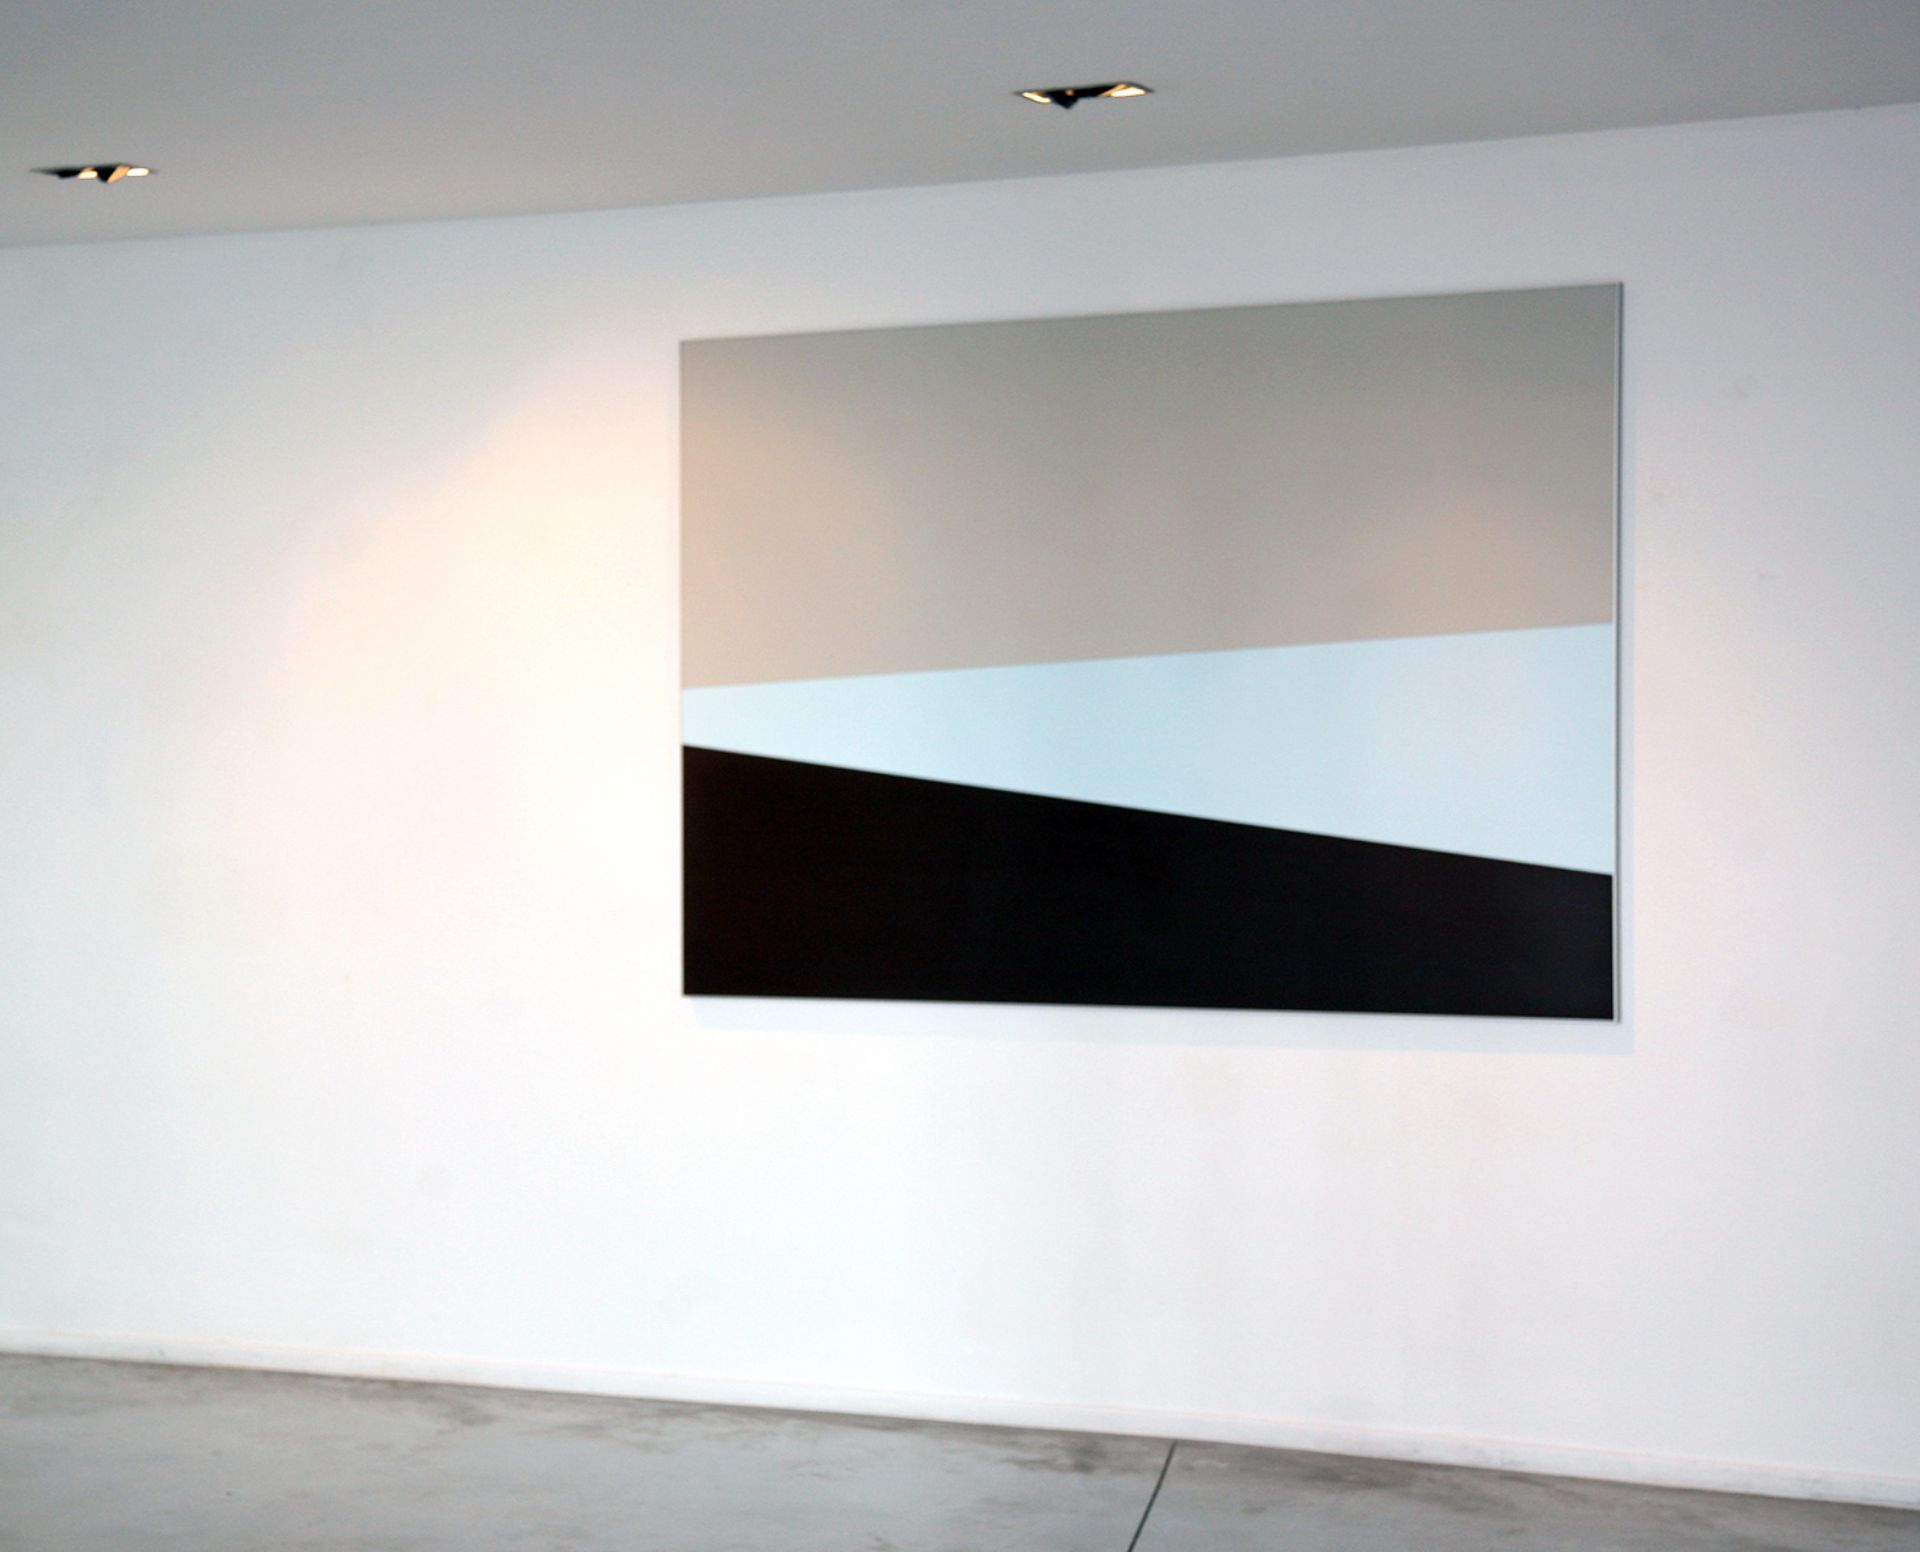 -Soudain le ciel devint bleu/Peintures- Whislist-Dark Pool –  Dance The World 20 Sept-16 Novembre 2014